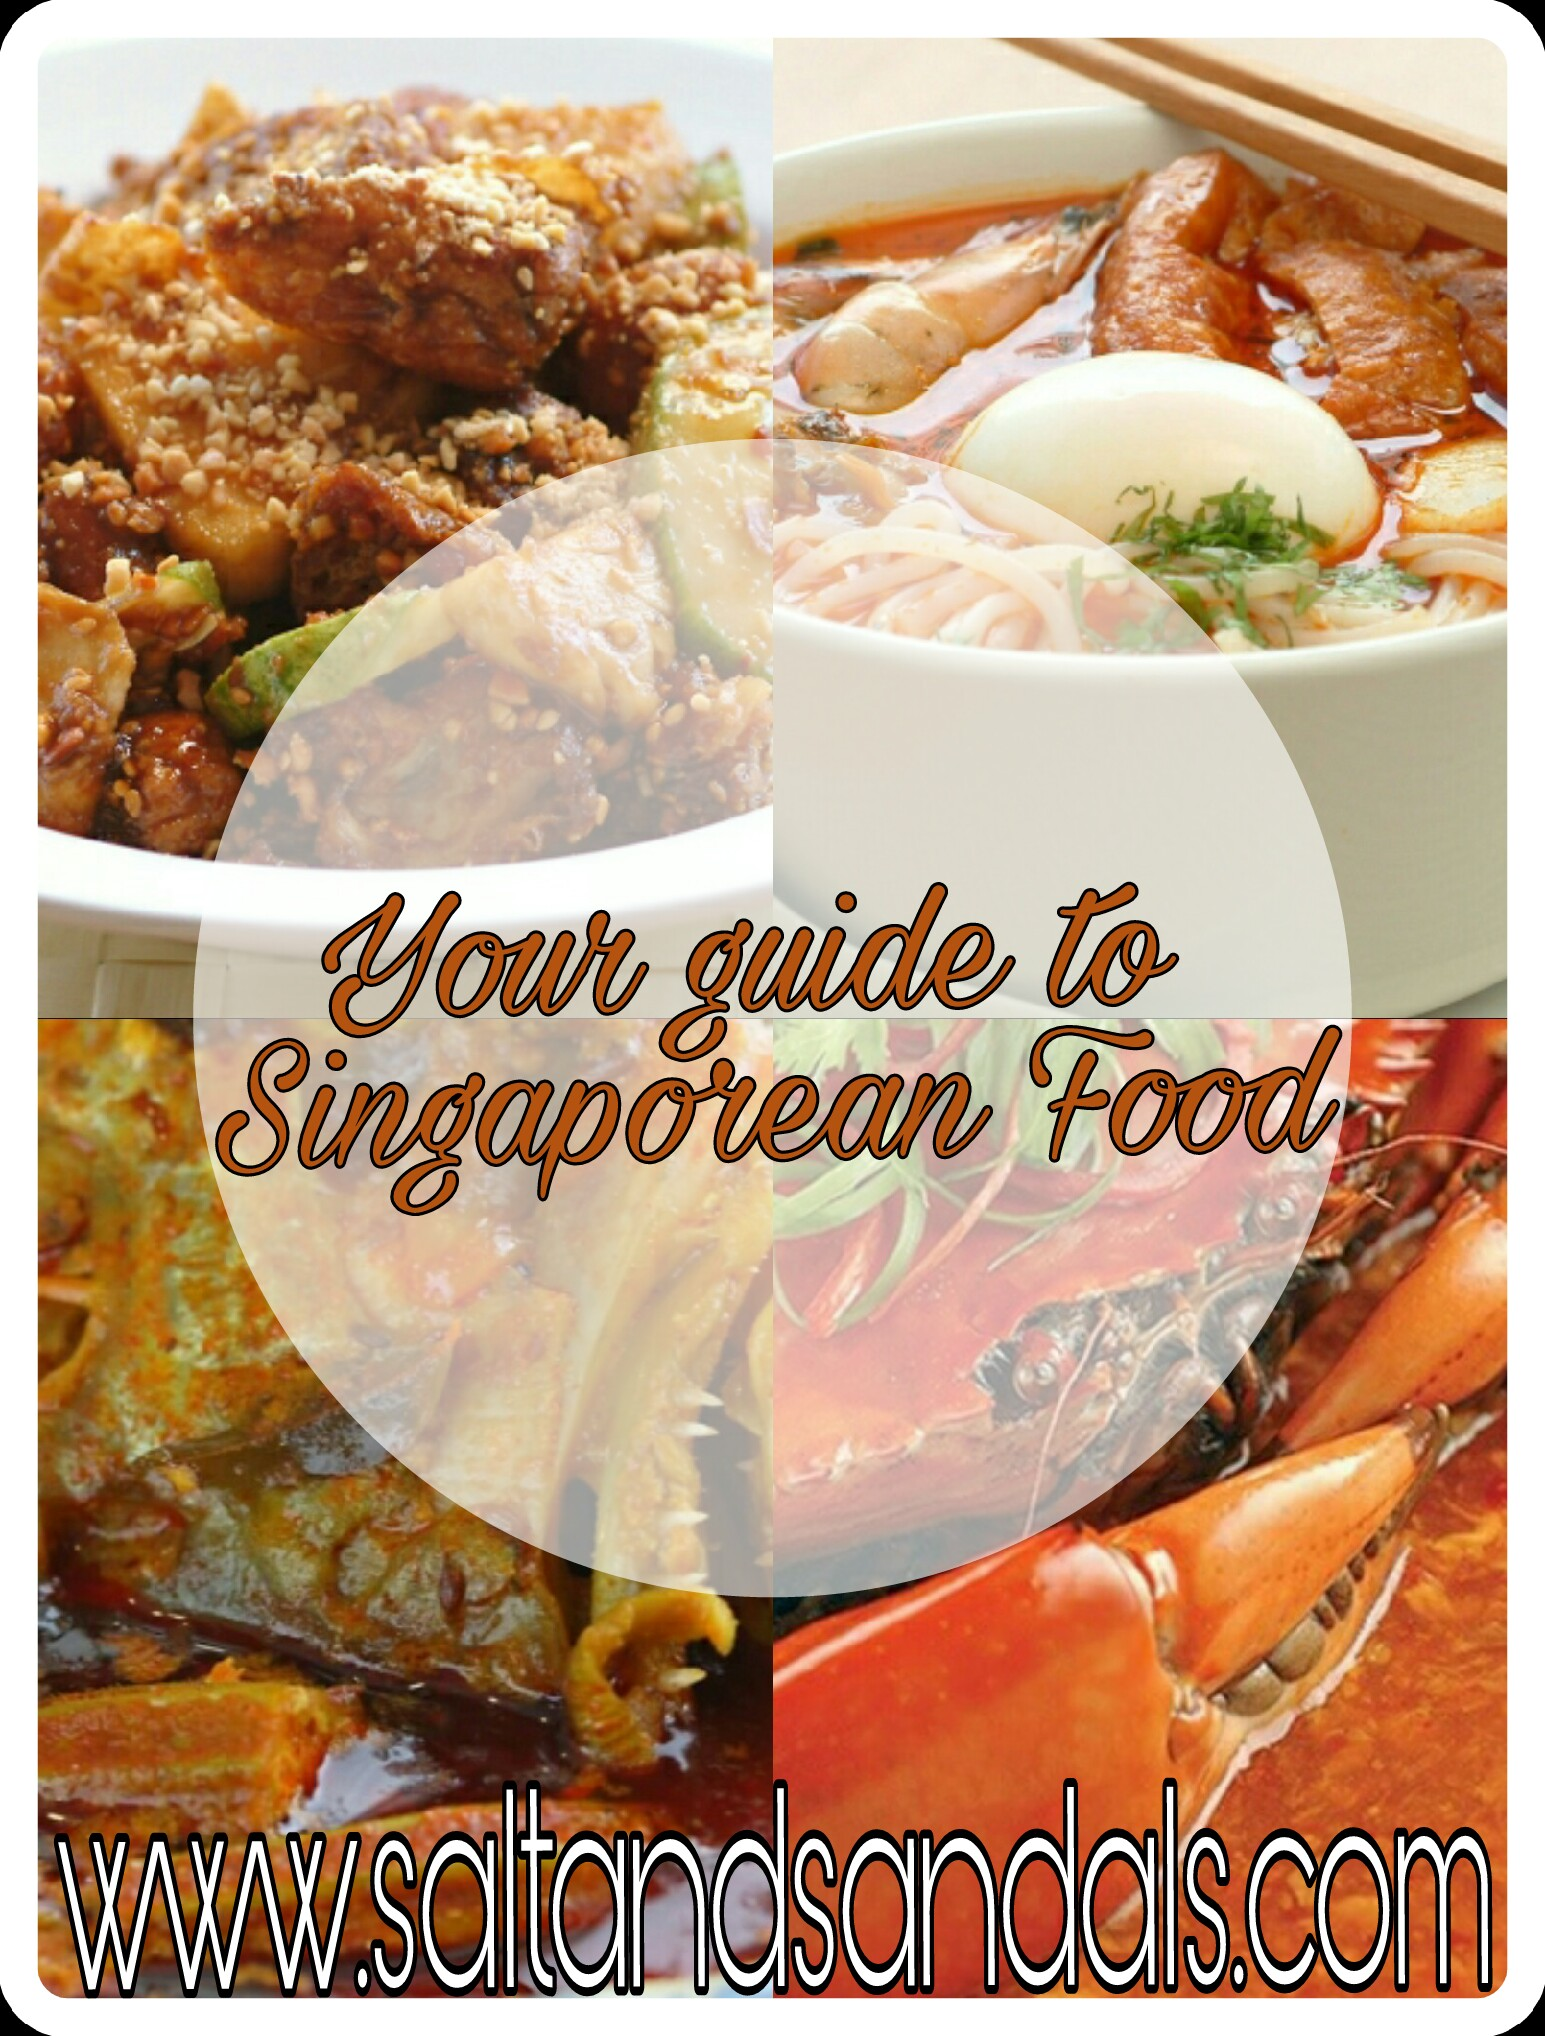 Your guide to Singaporean Food